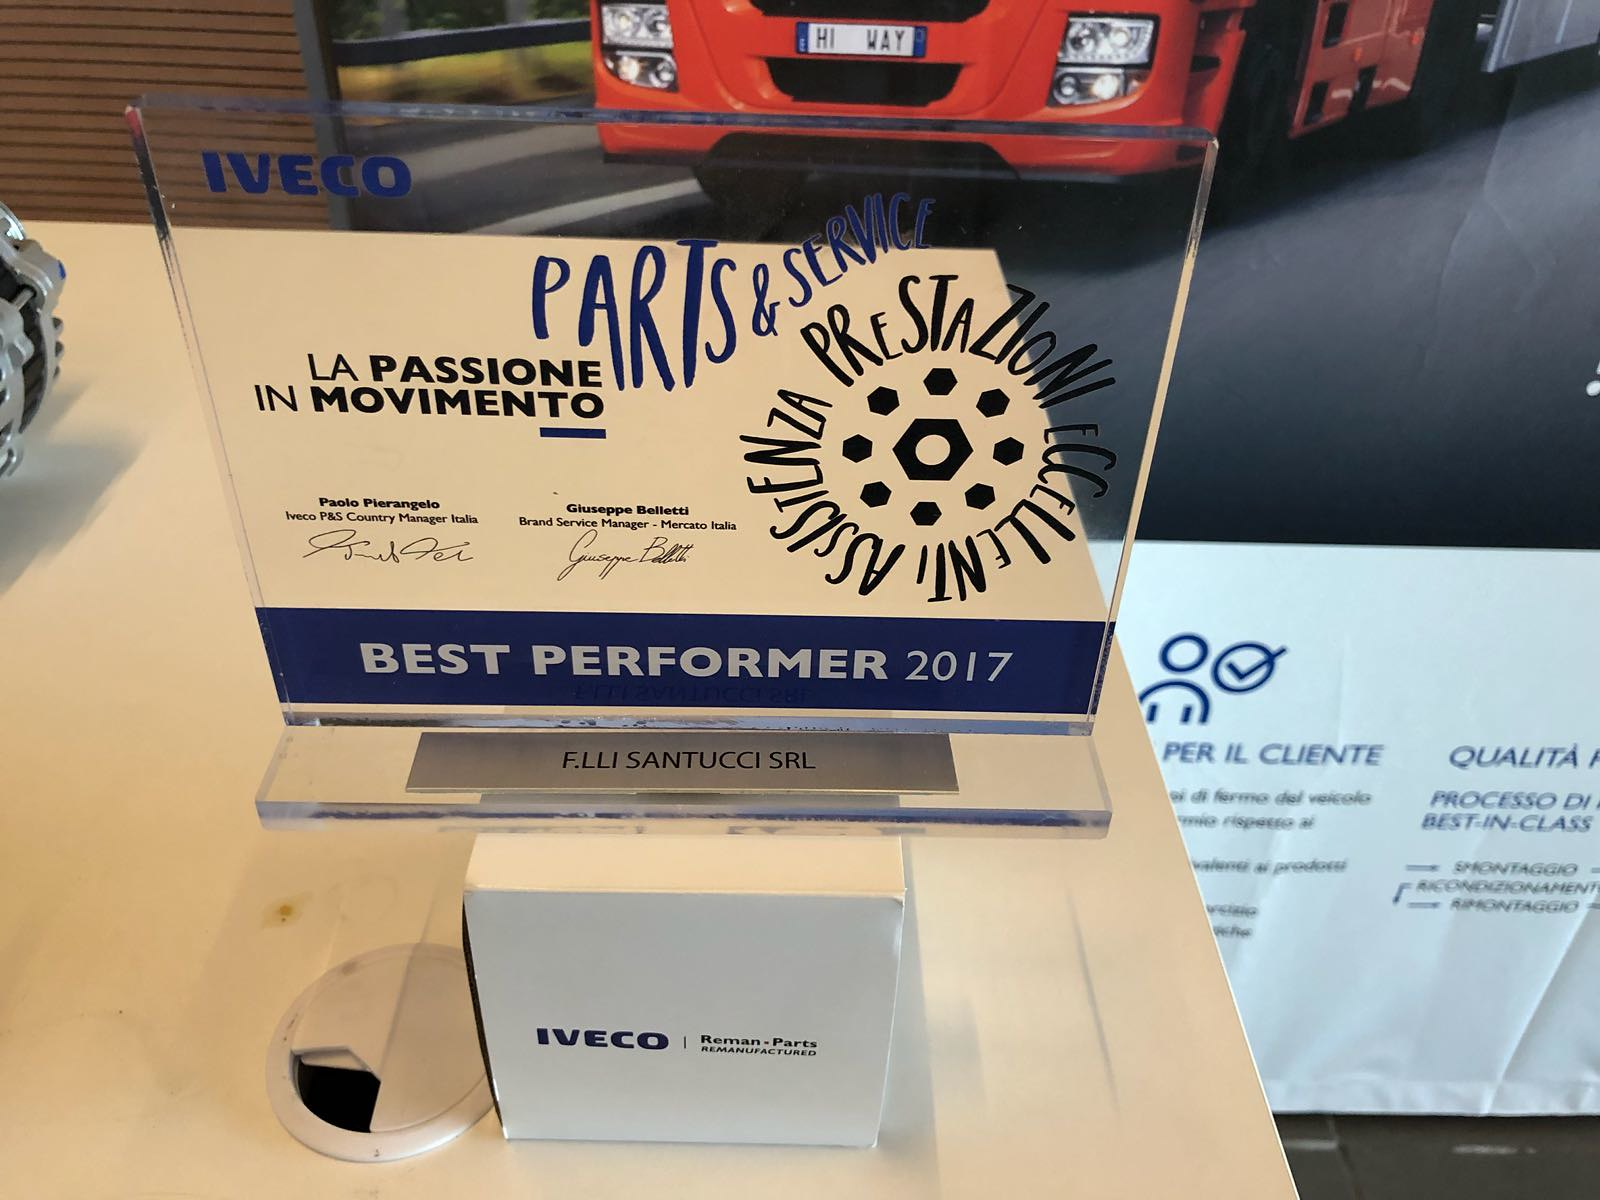 IVECO BEST PERFORMER 2017